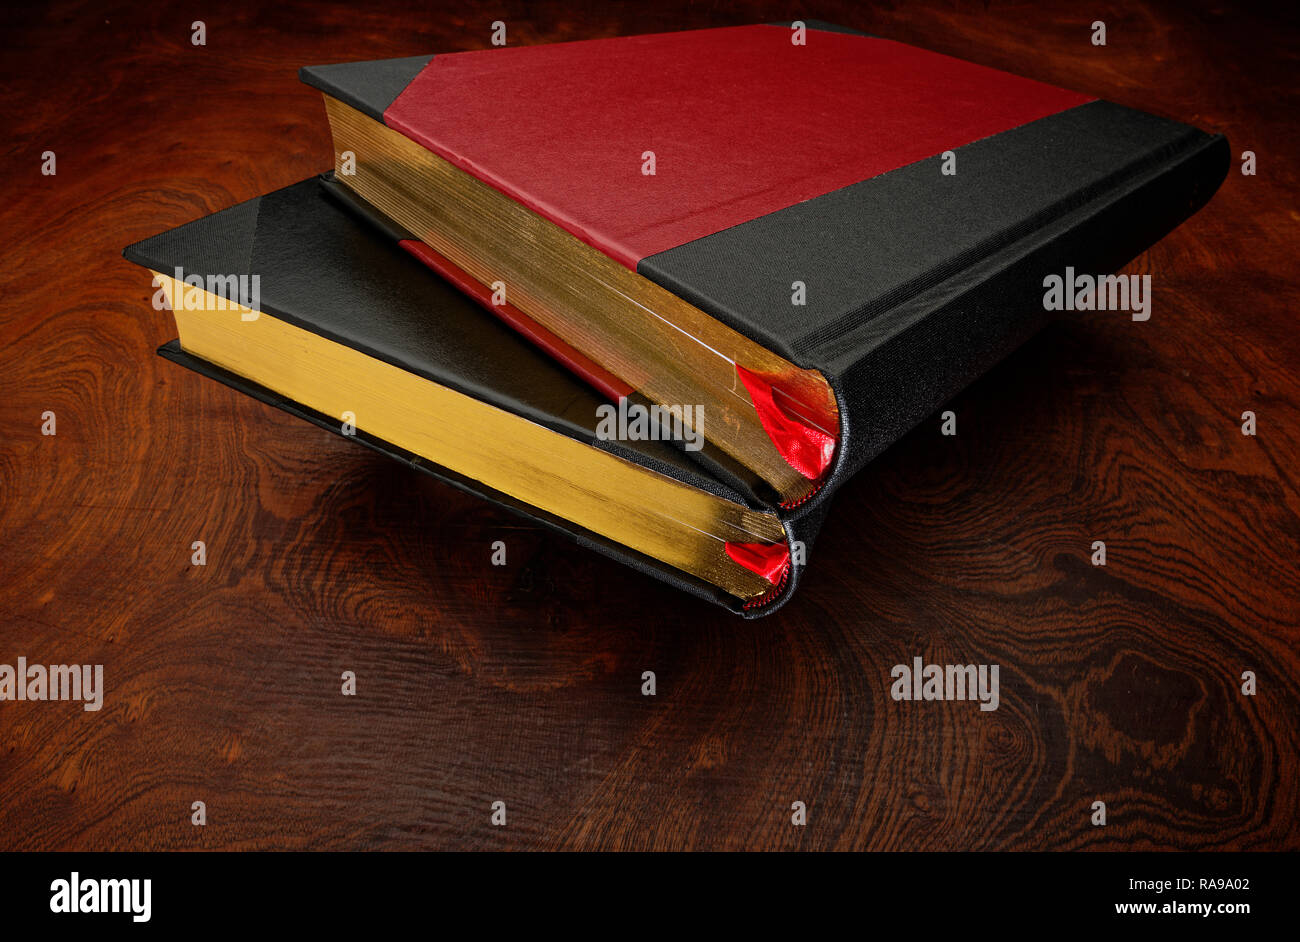 Nicely bound hard cover books, ledgers or journals Stock Photo